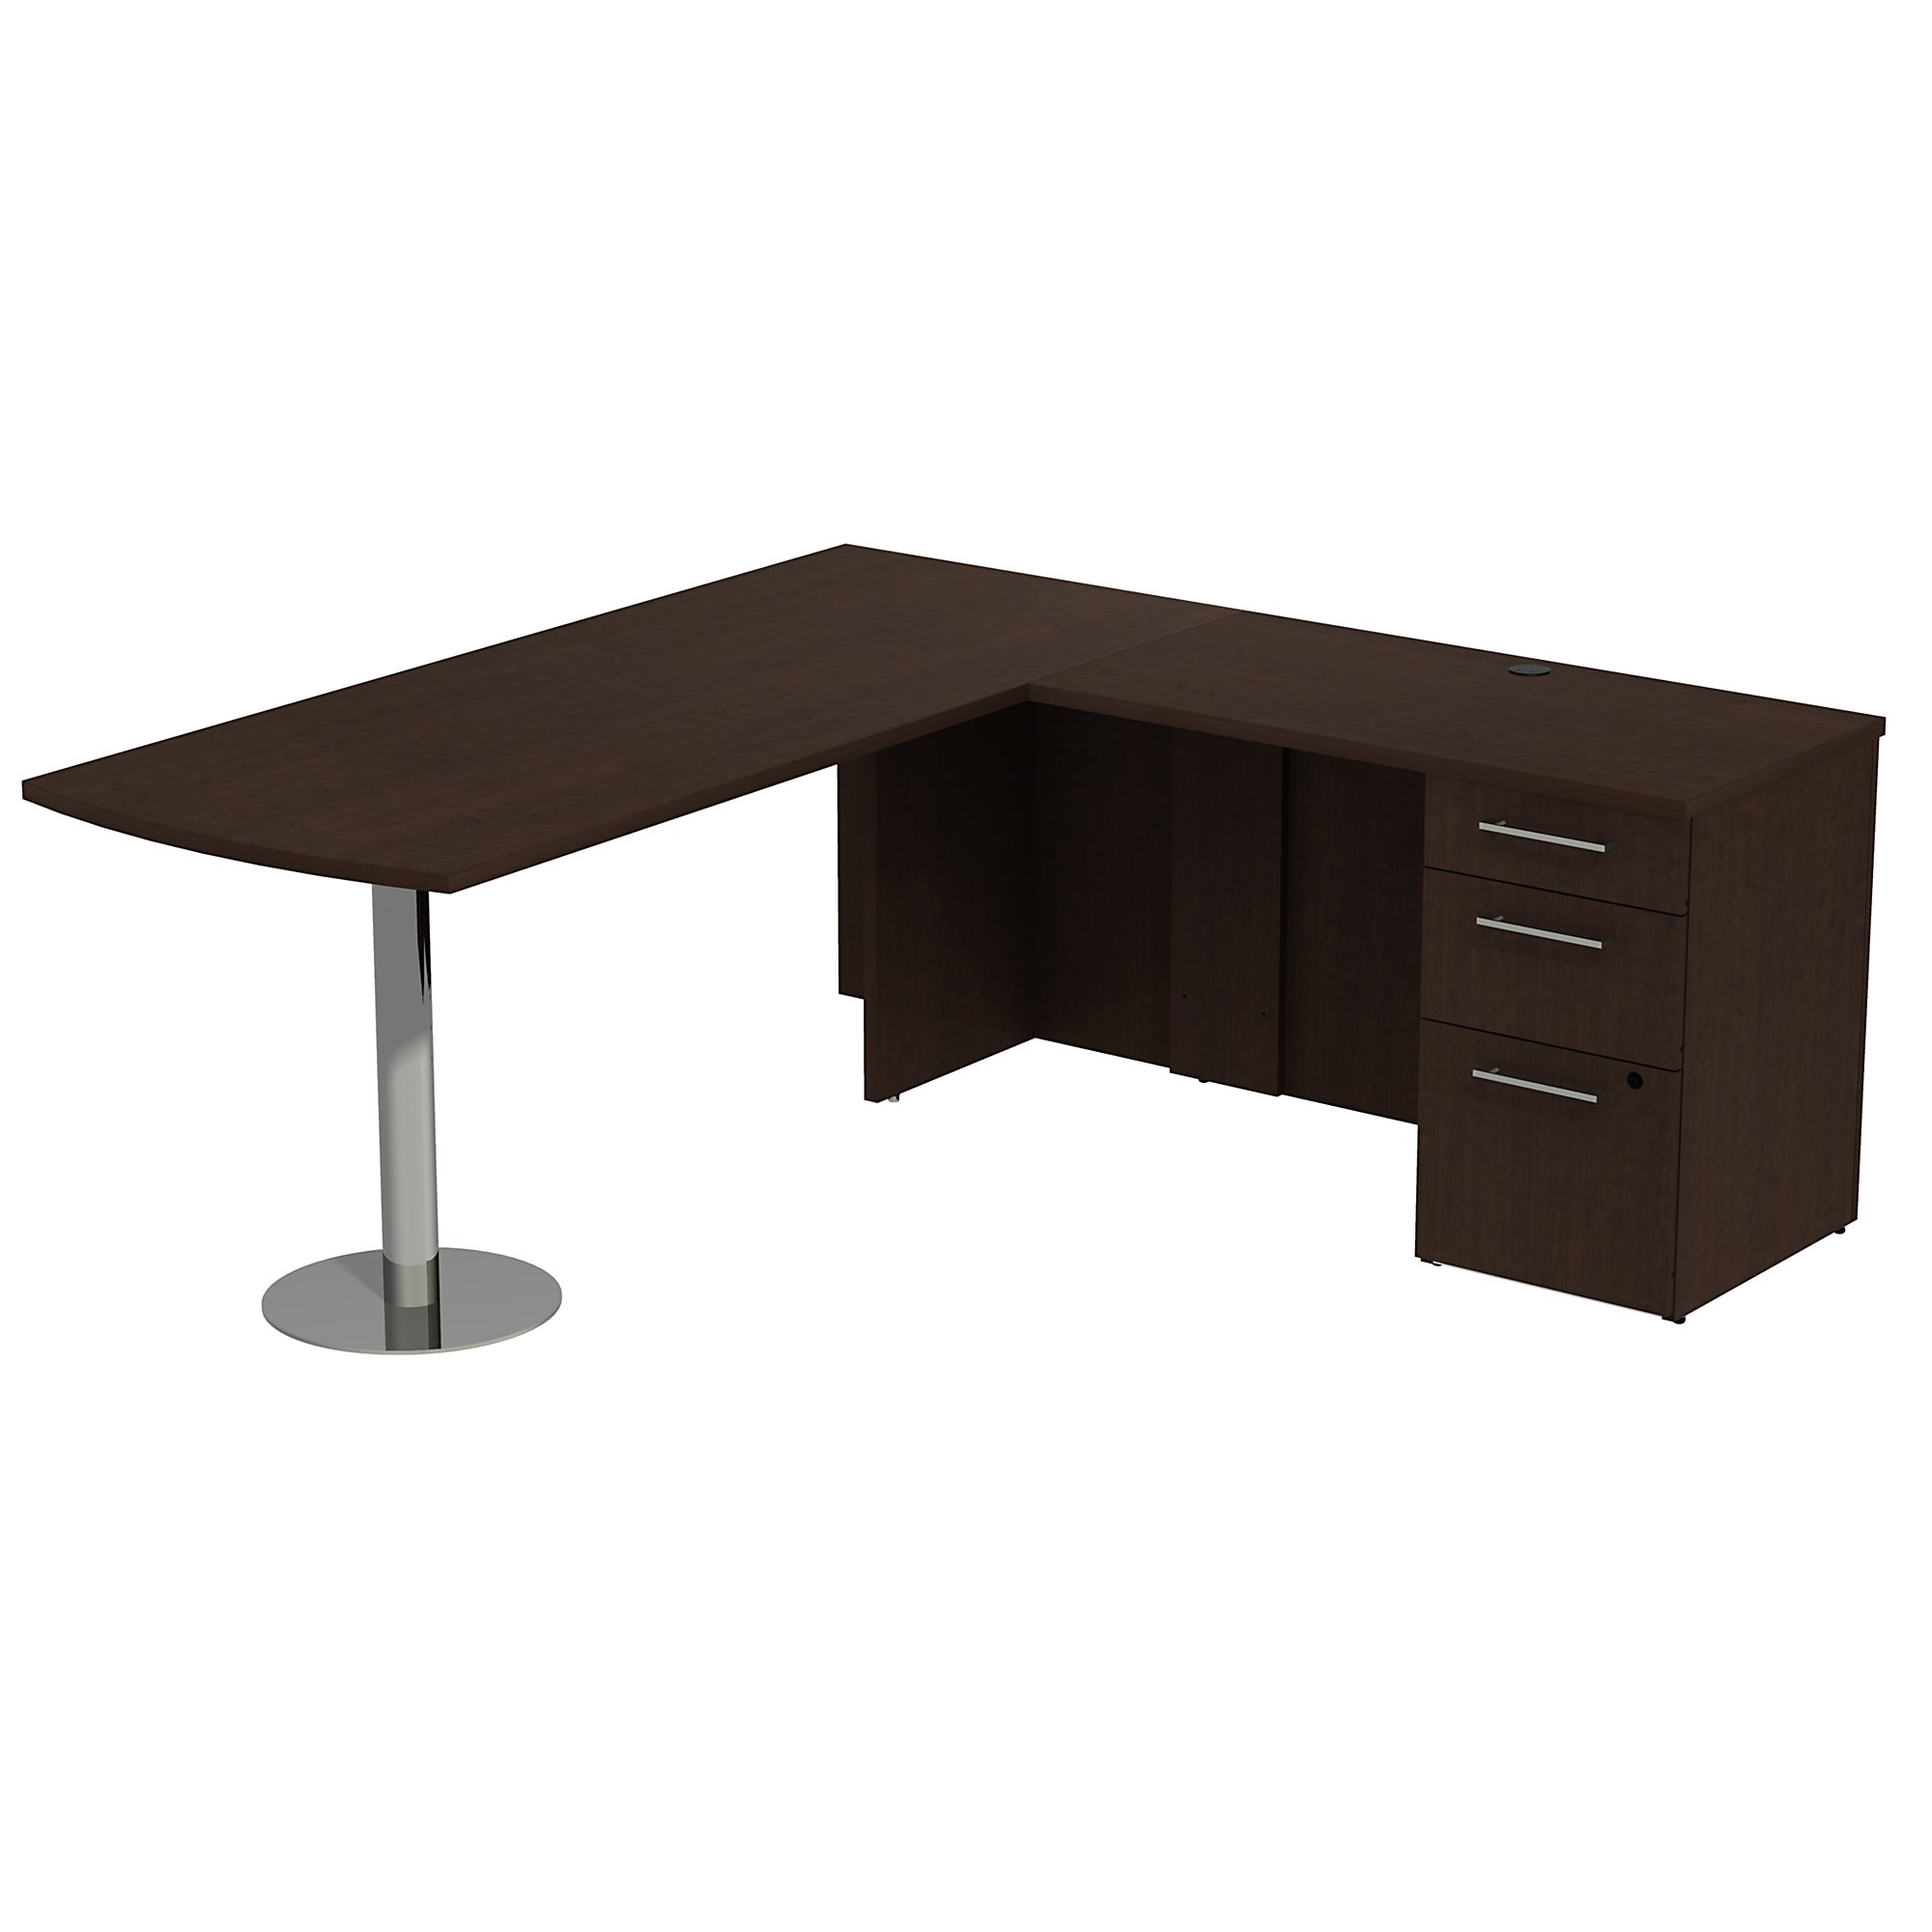 "Bush Business Furniture 300 Series 72""W x 30""D L Shaped Desk With Peninsula And 3 Drawer Pedestal, Mocha Cherry, Standard Delivery"